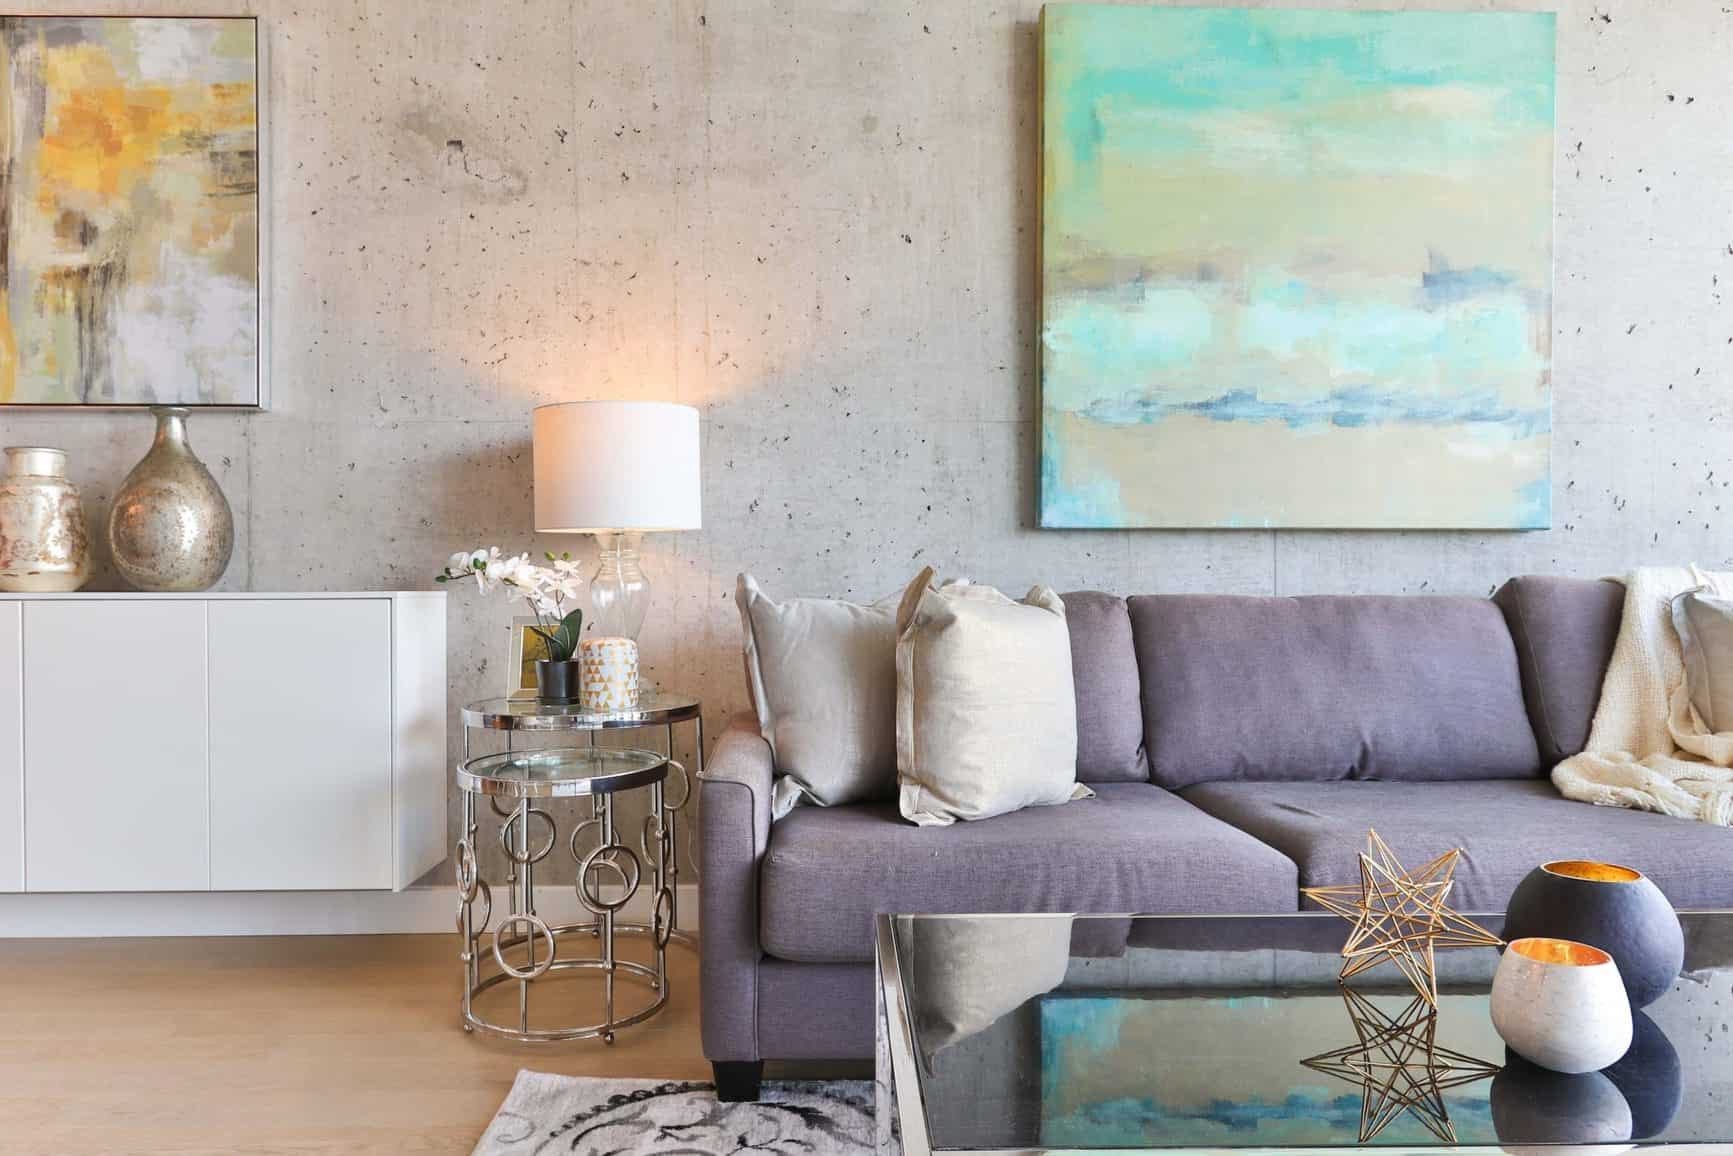 Finding New Ways to Beautify Your Home with Furniture!